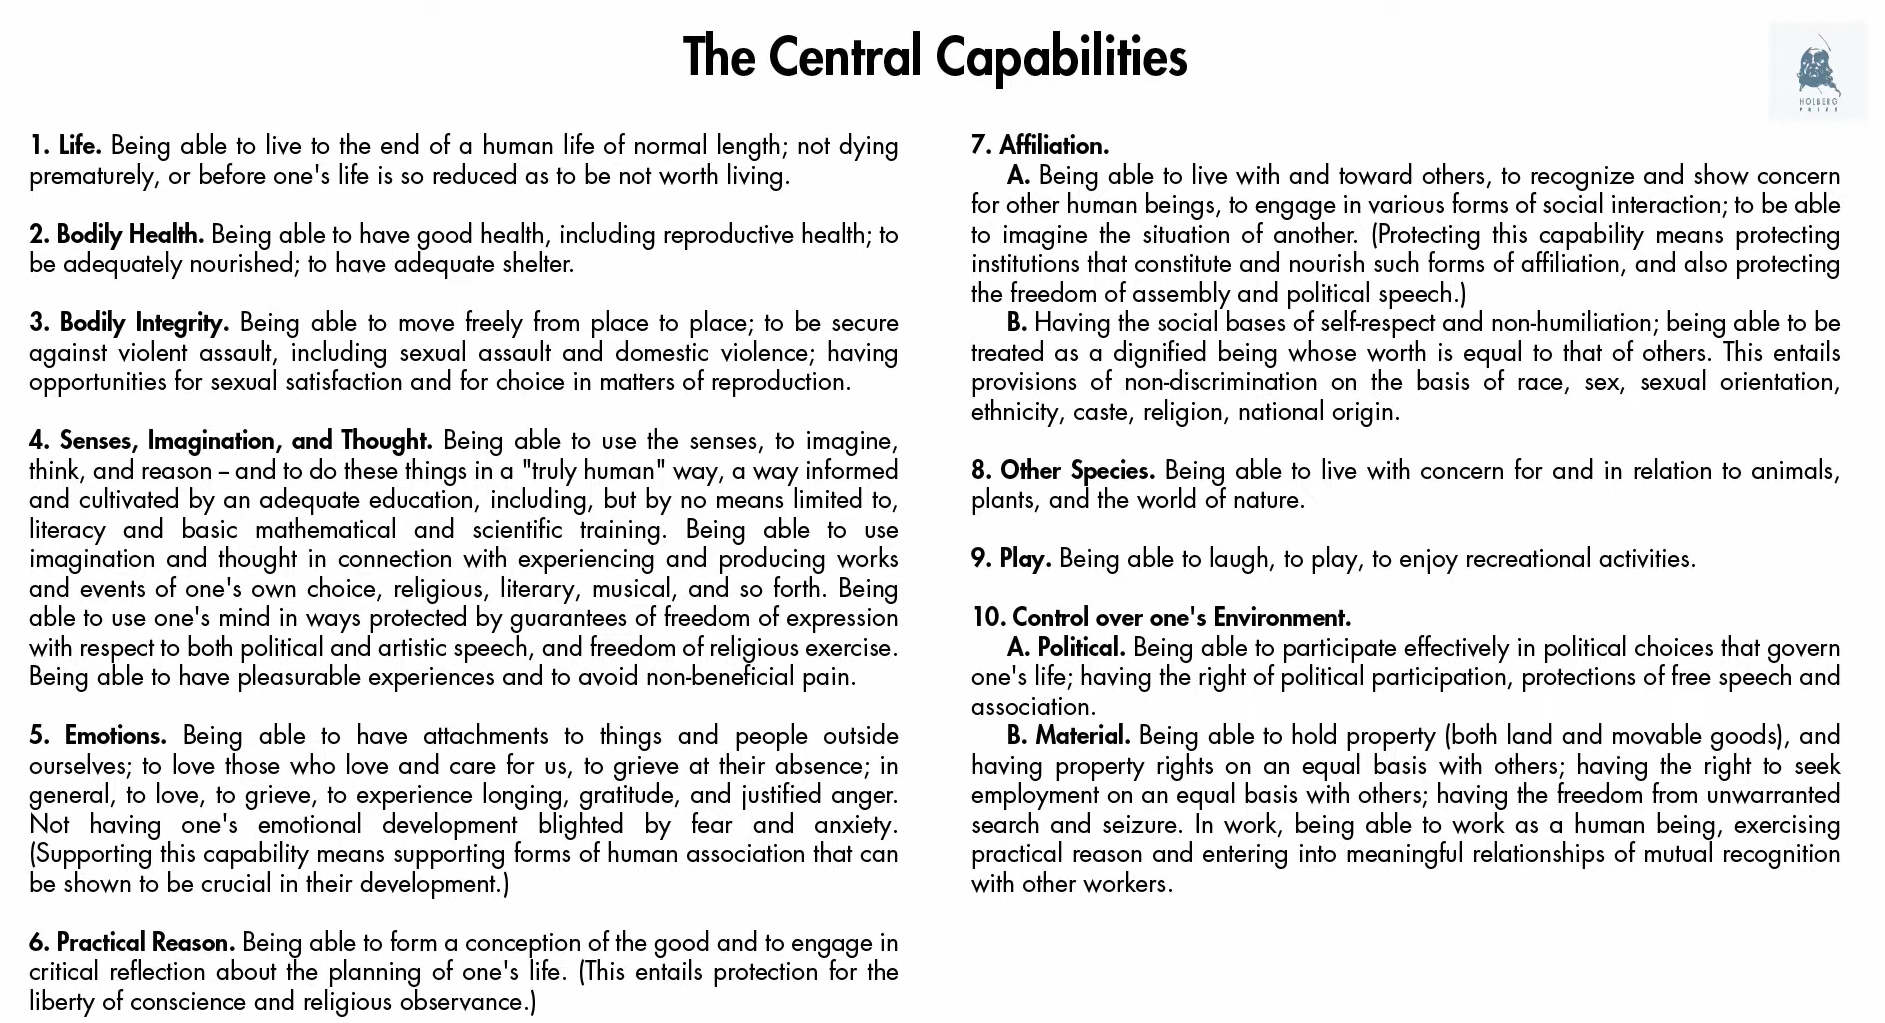 The Central Capabilities